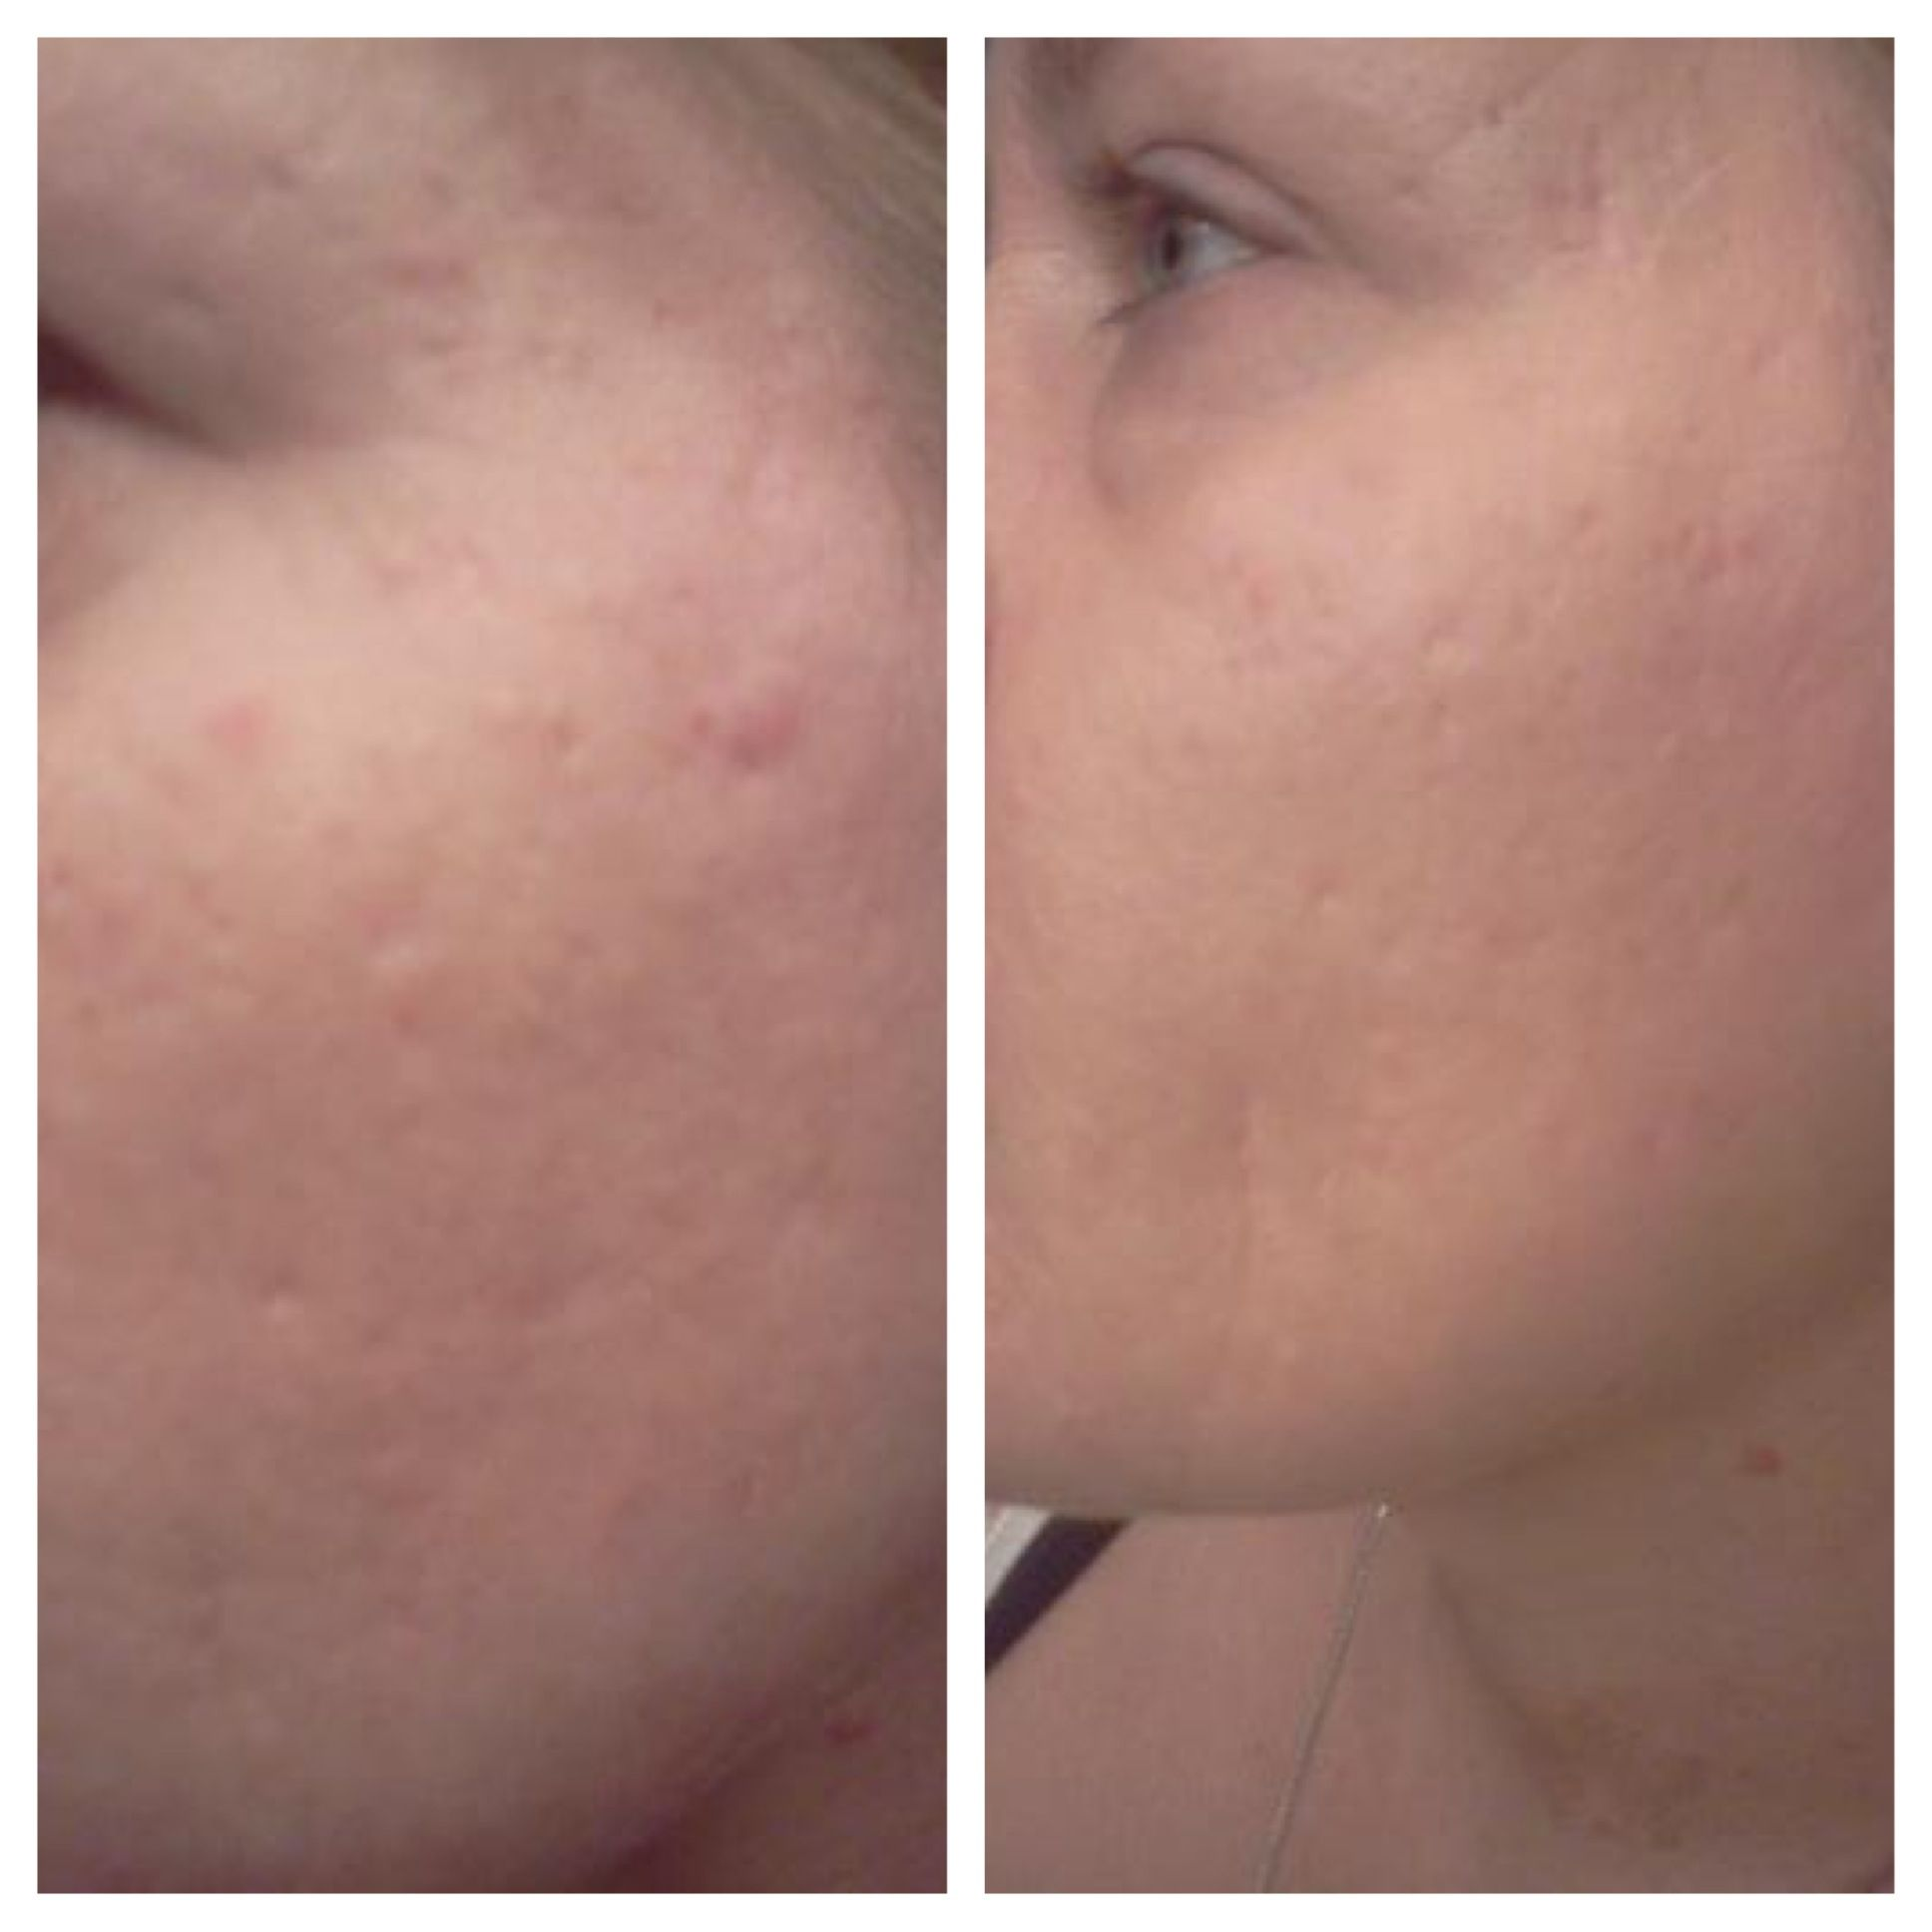 Look At These Results Before And After 5 Days Of Using Nerium Dereknmelissa Nerium Com Laser Skin Resurfacing